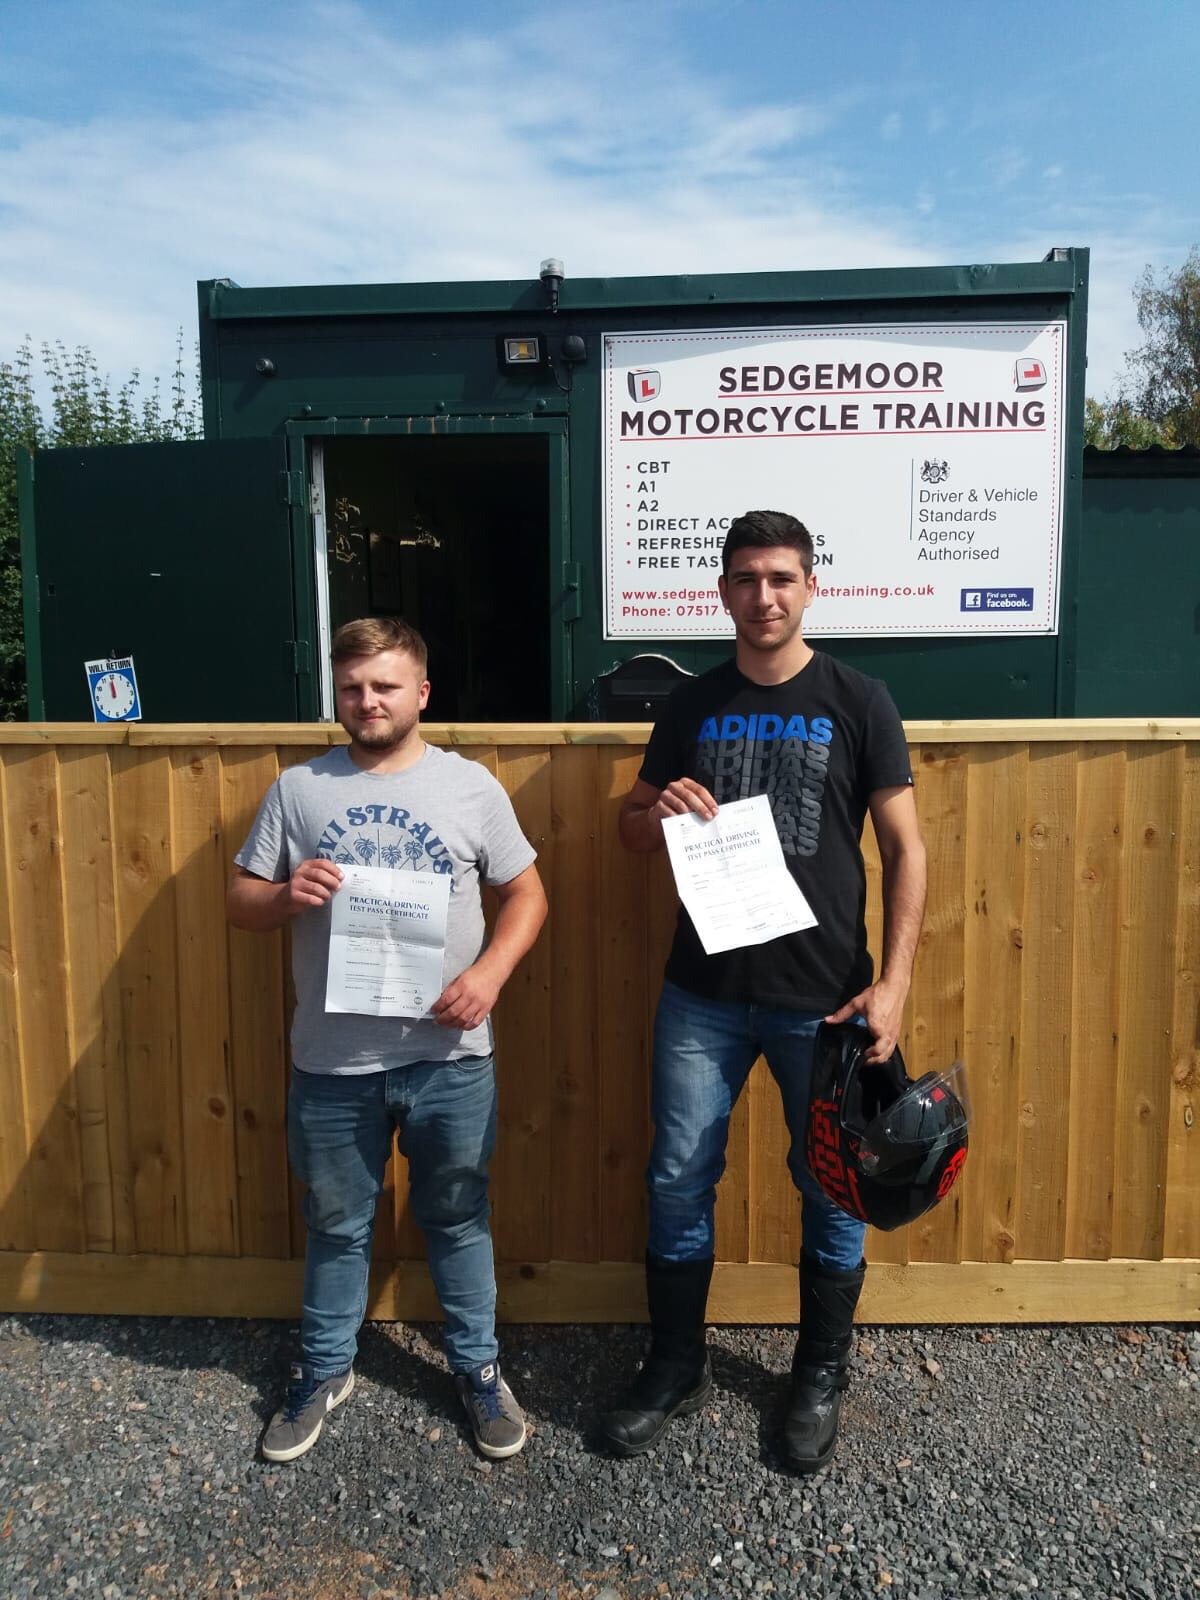 Sedgemoor Motorcycle Training students in Bridgwater